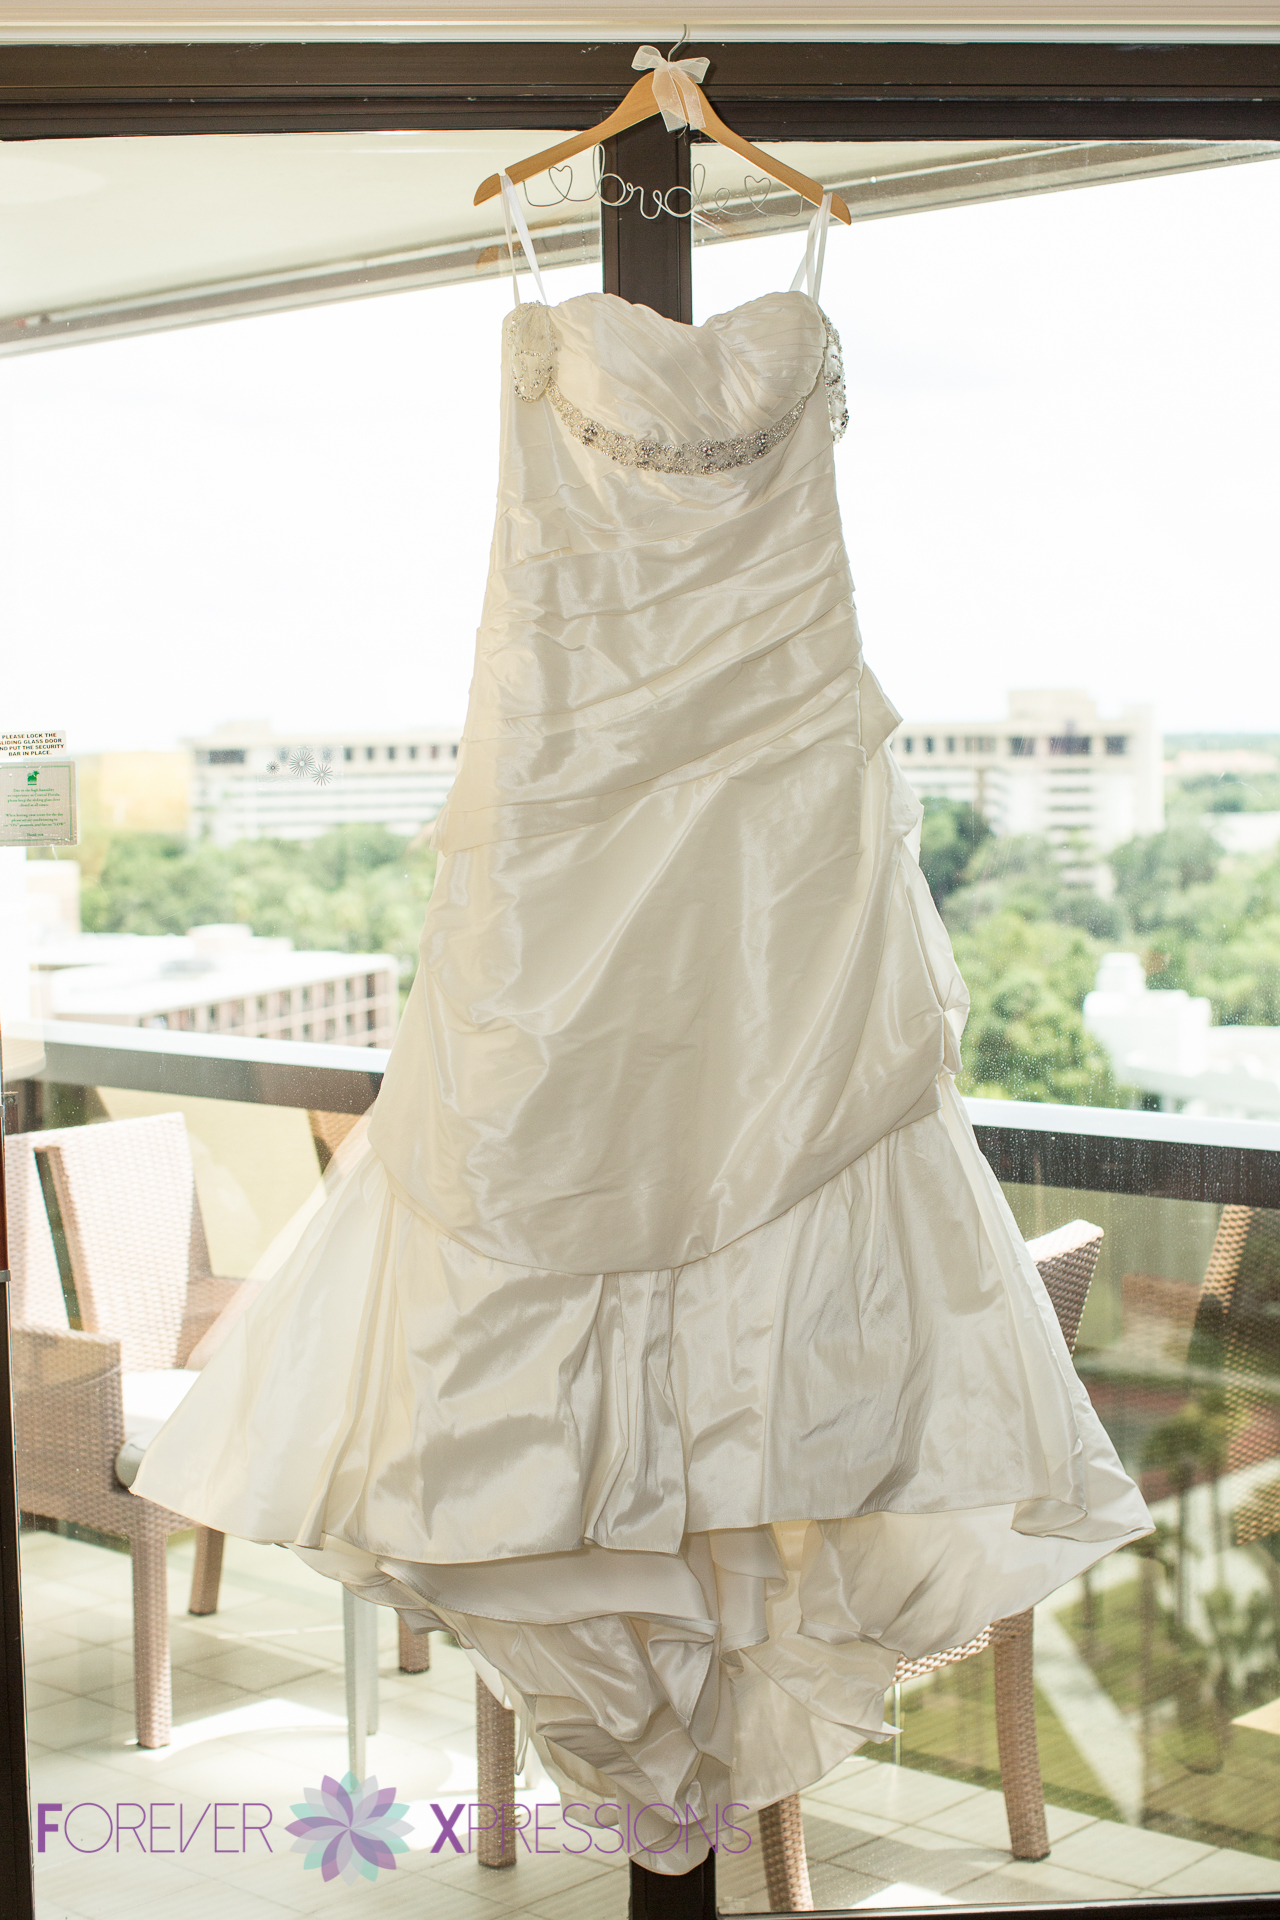 Forever_Xpressions_Wedding_Photography_Monteverde_Bella_Collina-0017